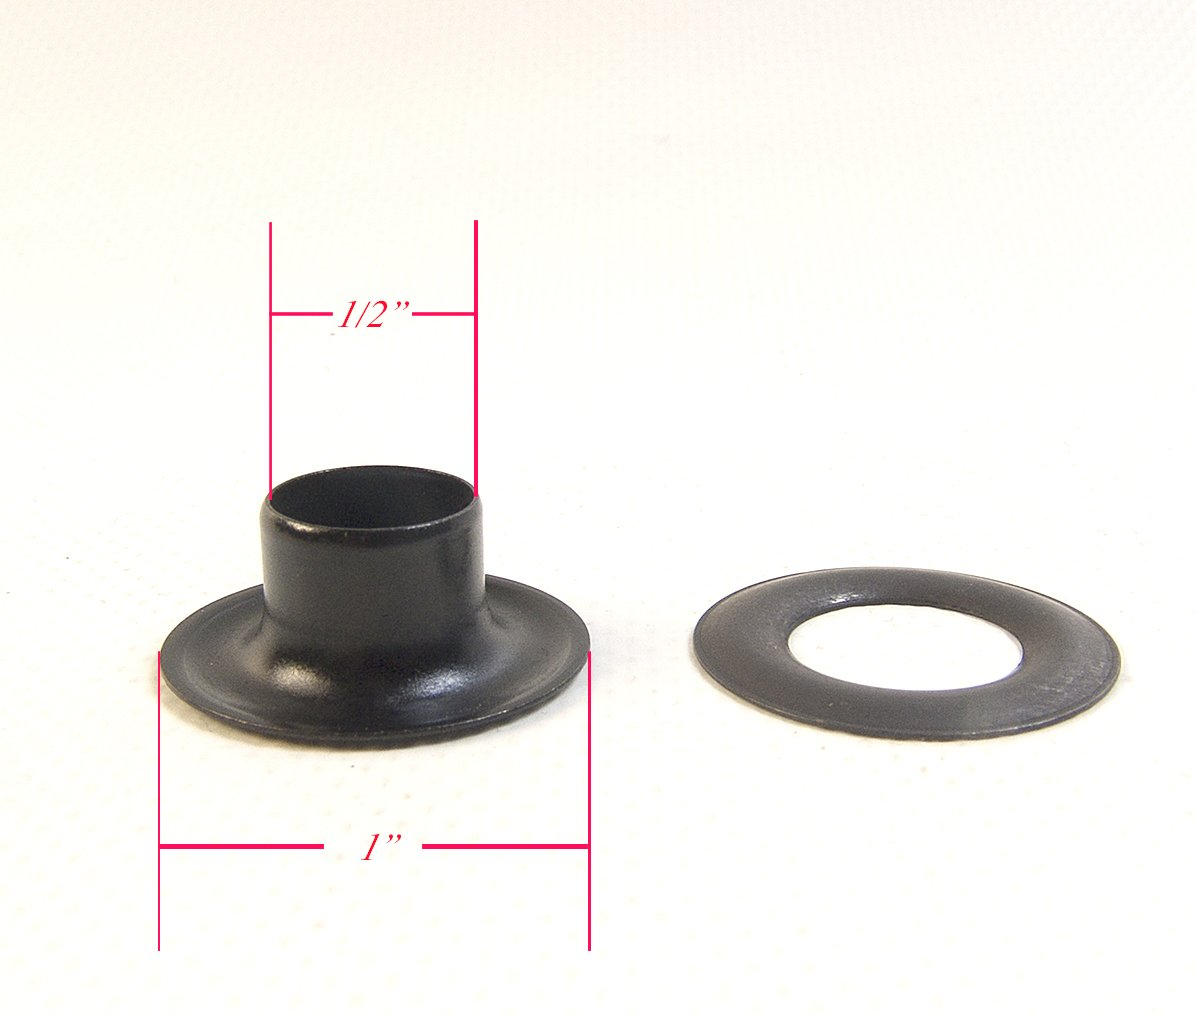 Grommets, Plain, Black Oxide, Setting Tool Also Available (#4 1/2'' inc Plain Grommets w/ Punch & Setting Tool)